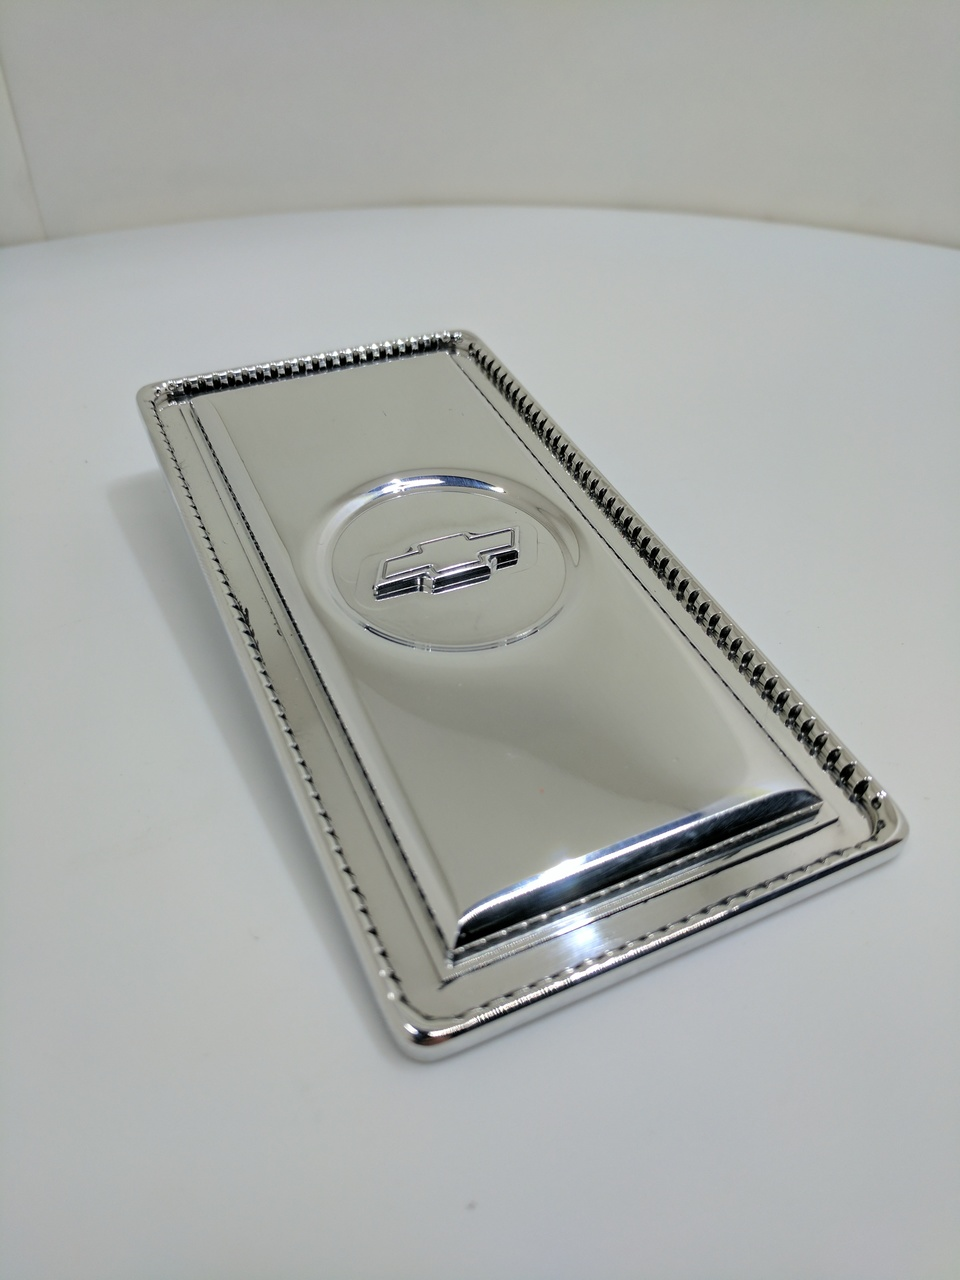 Door Panel Emblem for 75 Caprice ONLY